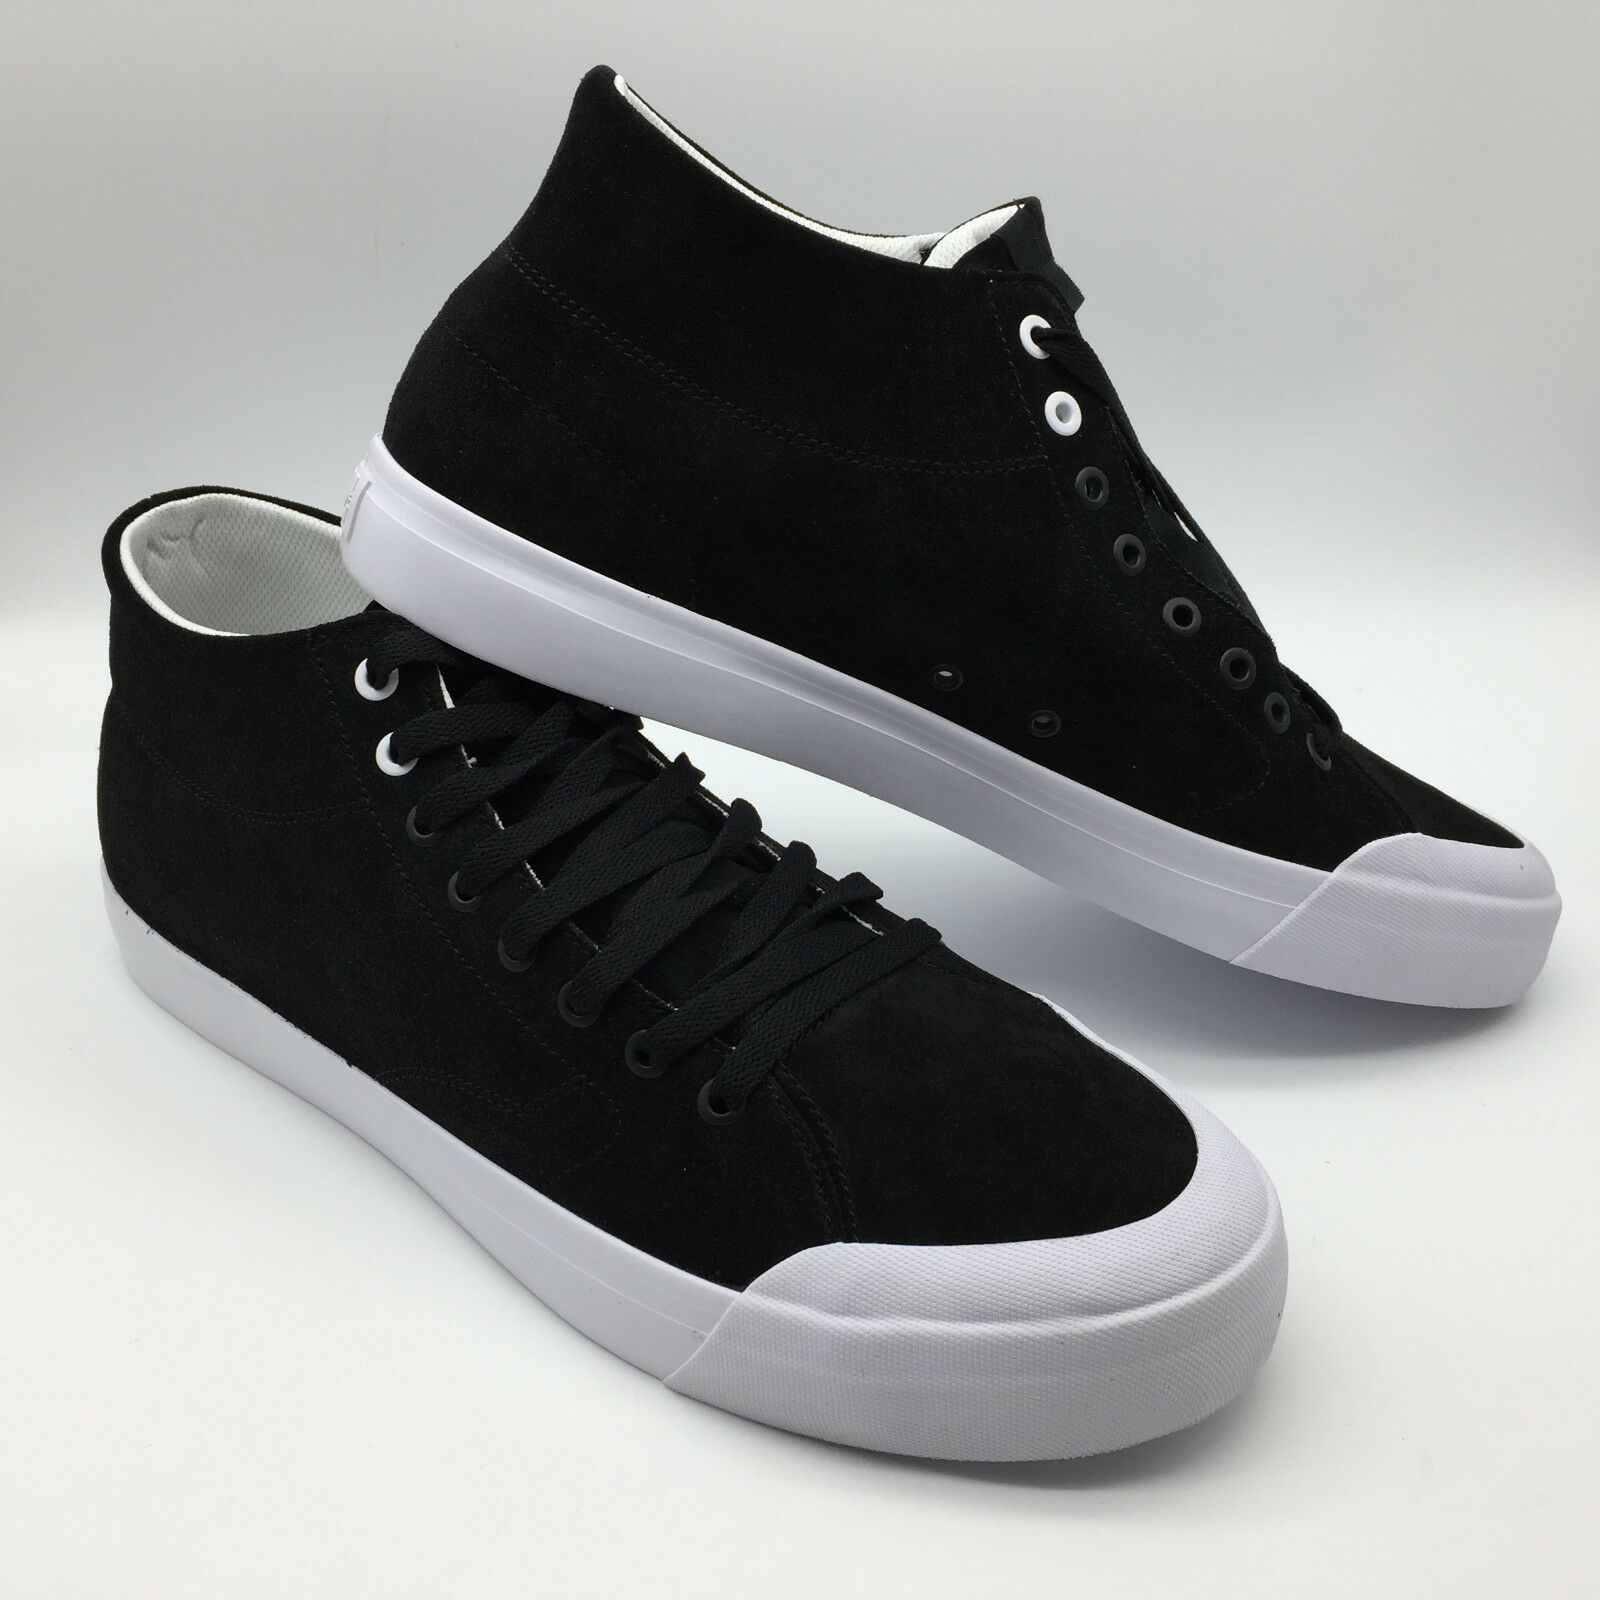 DC Men's shoes  Evan Smith Hi Zero  Black Black